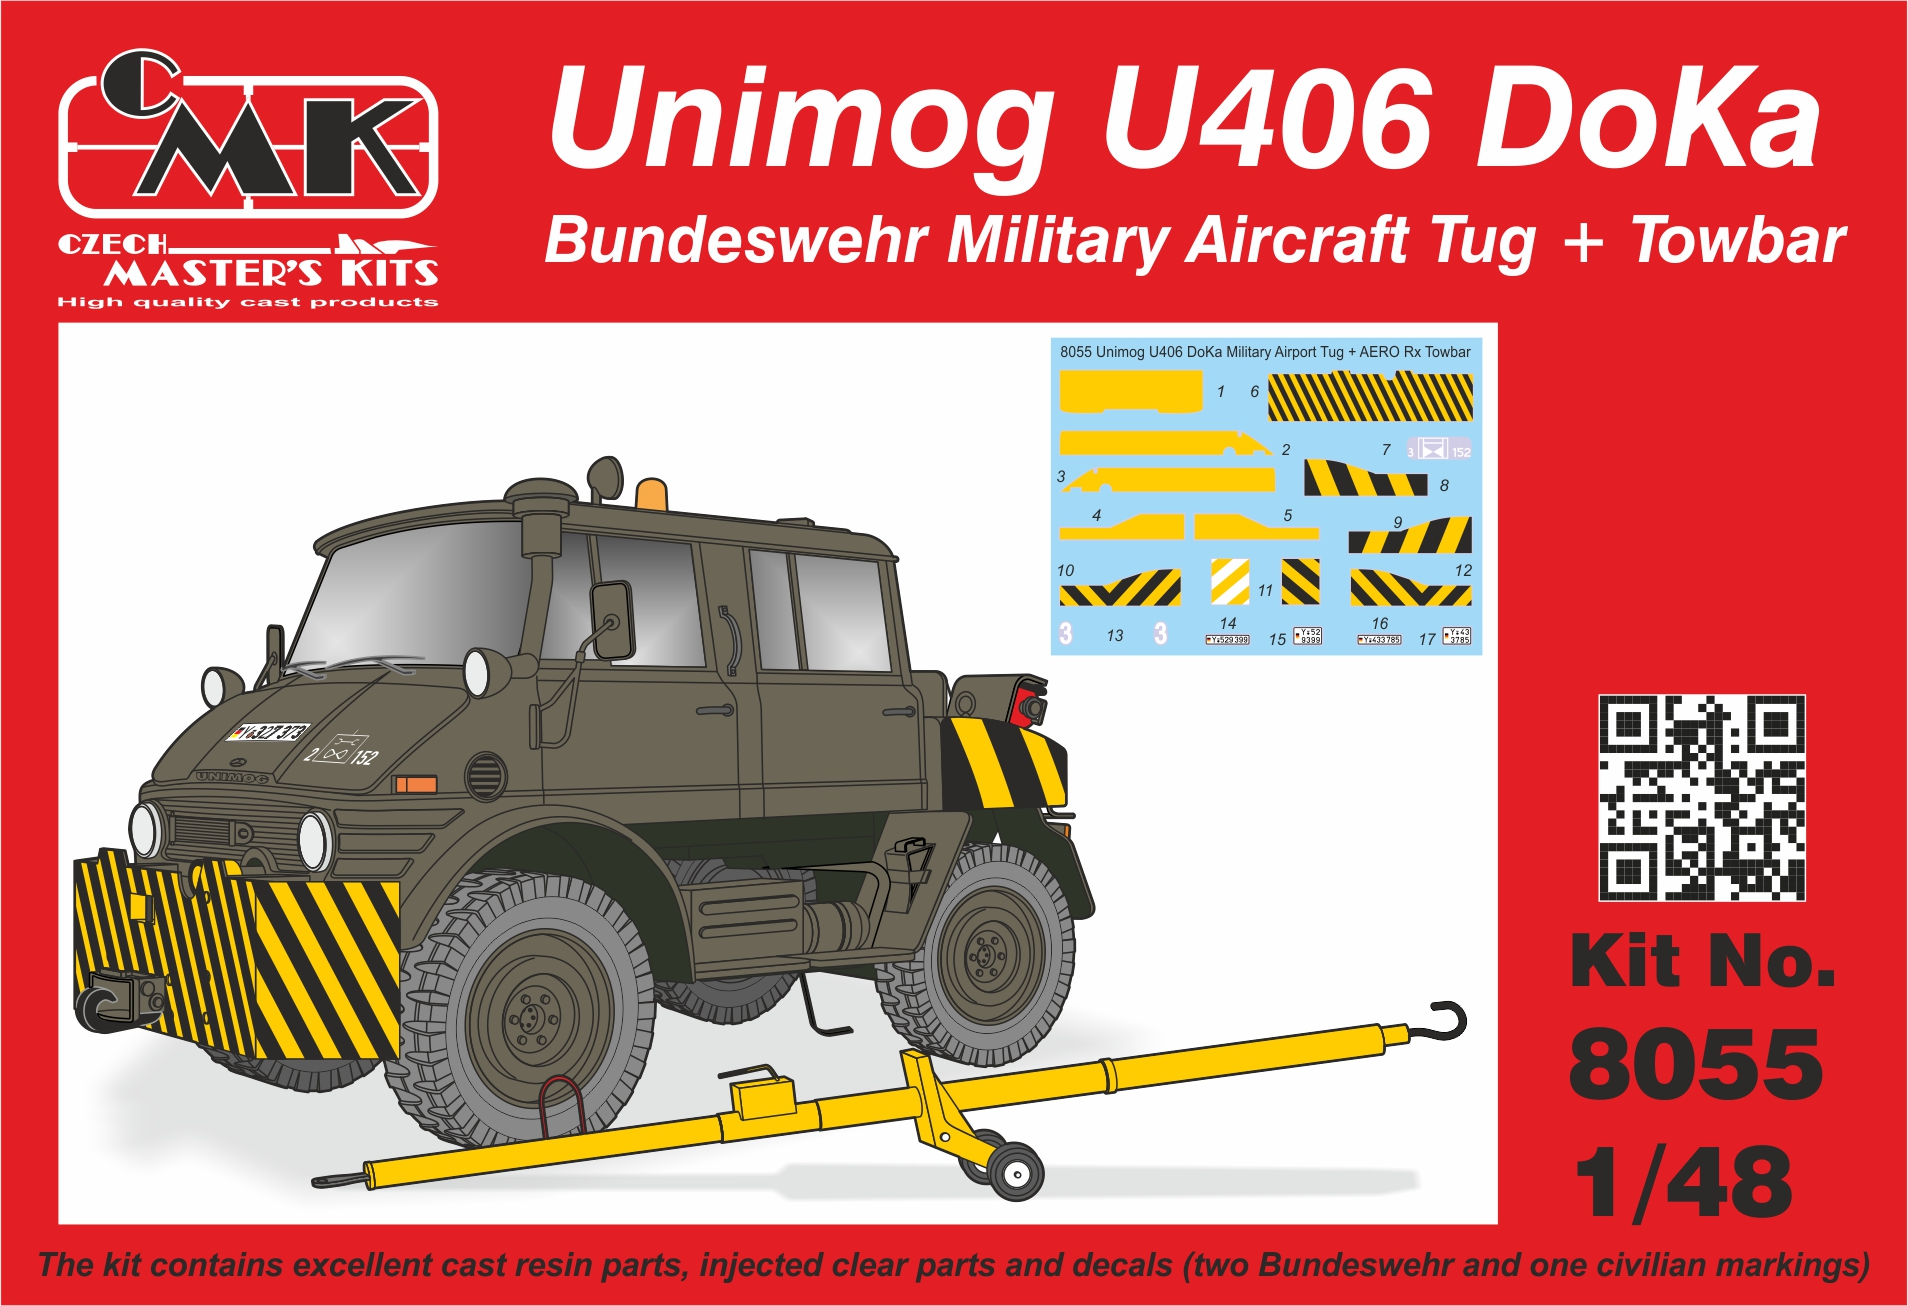 Planet Models 129-MV120 MAN LE 10.220 Bundeswehr Military Aircra in 1:72